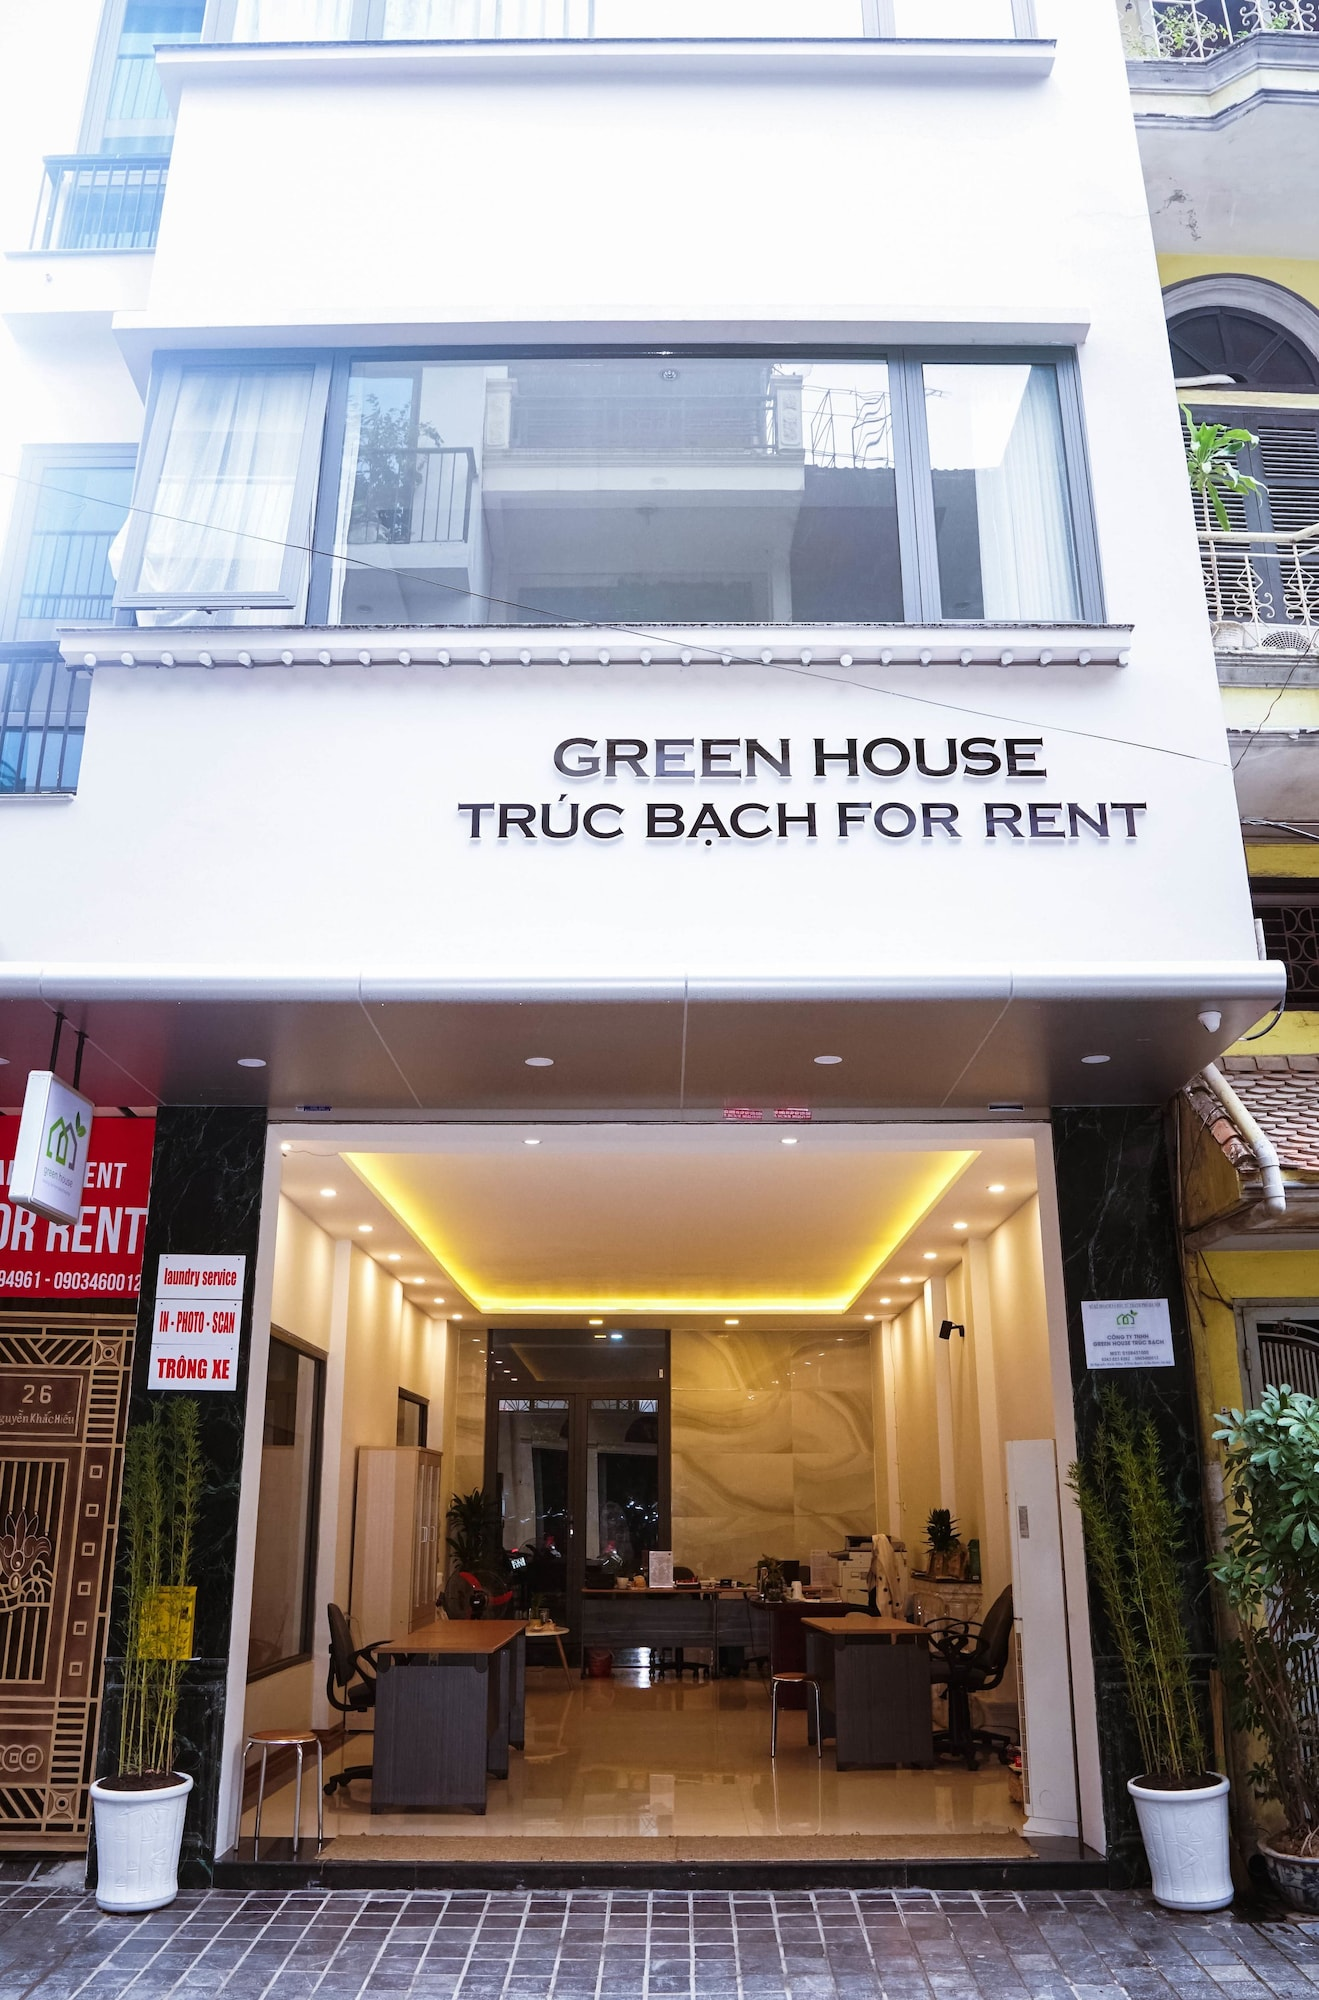 Green House Service Apartment Hotel Hanoi - Reviews, Photos